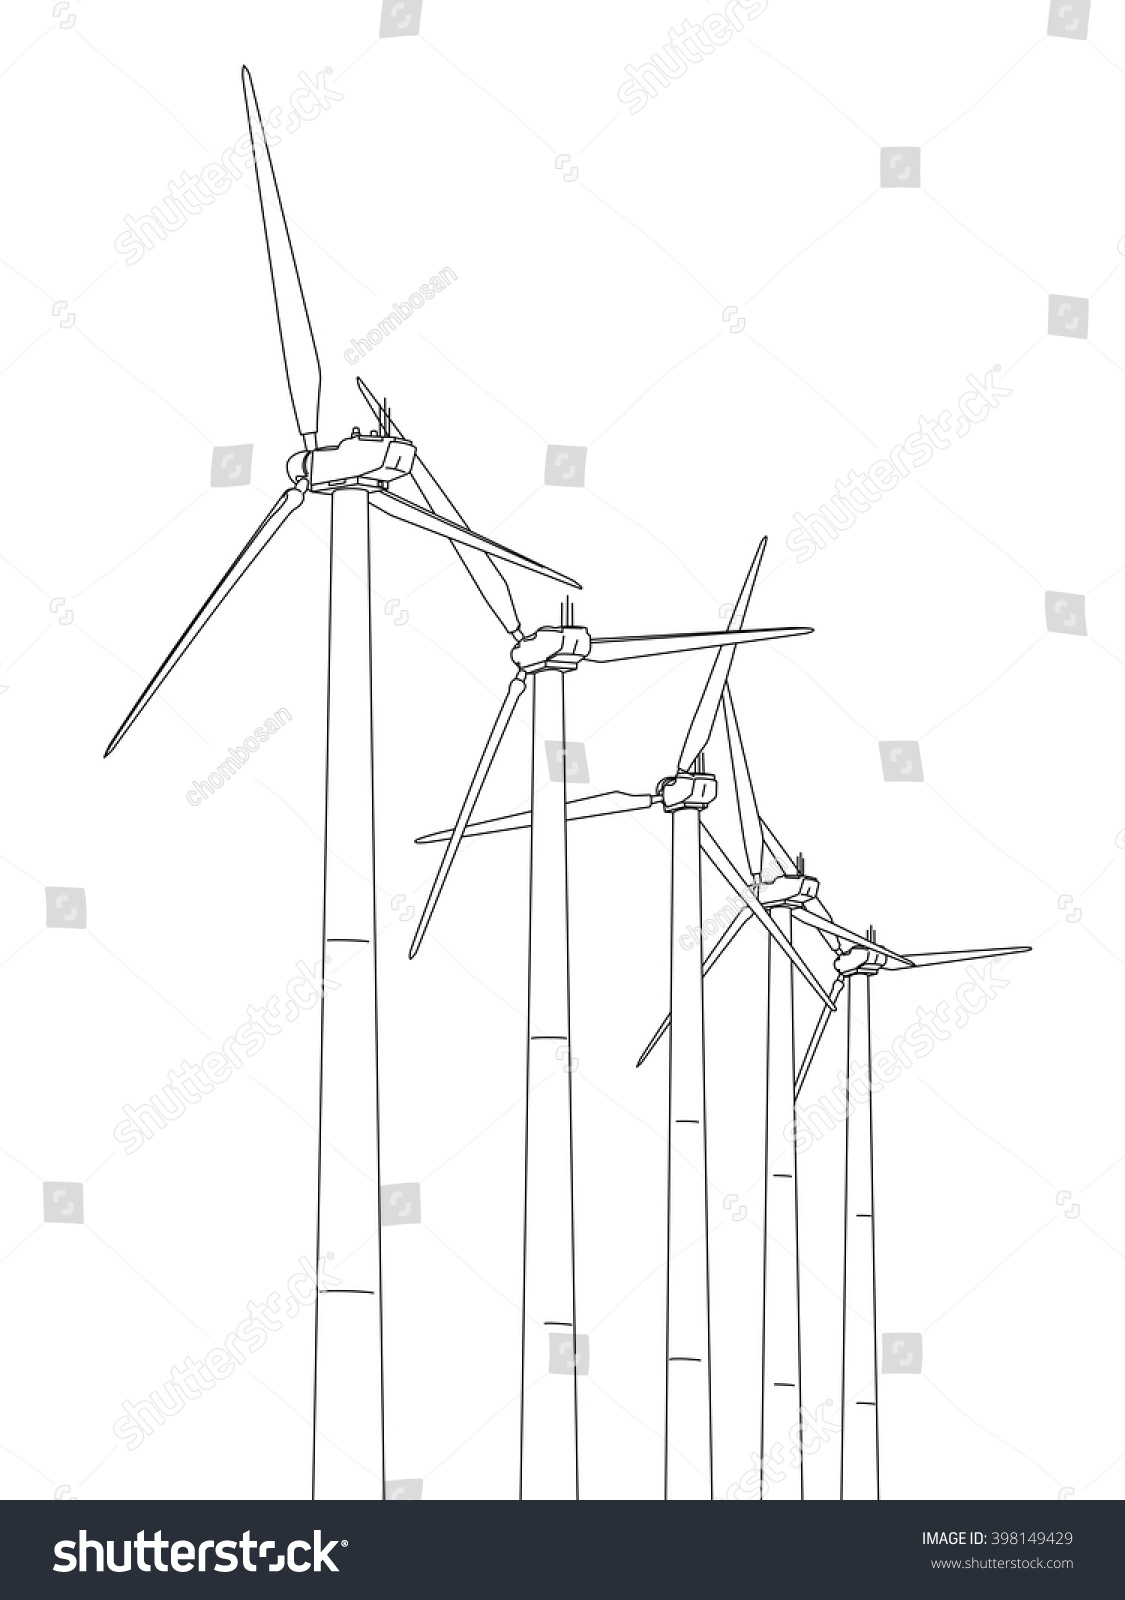 Line Drawing Windmill : Wind power plant line drawing illustration stock vector